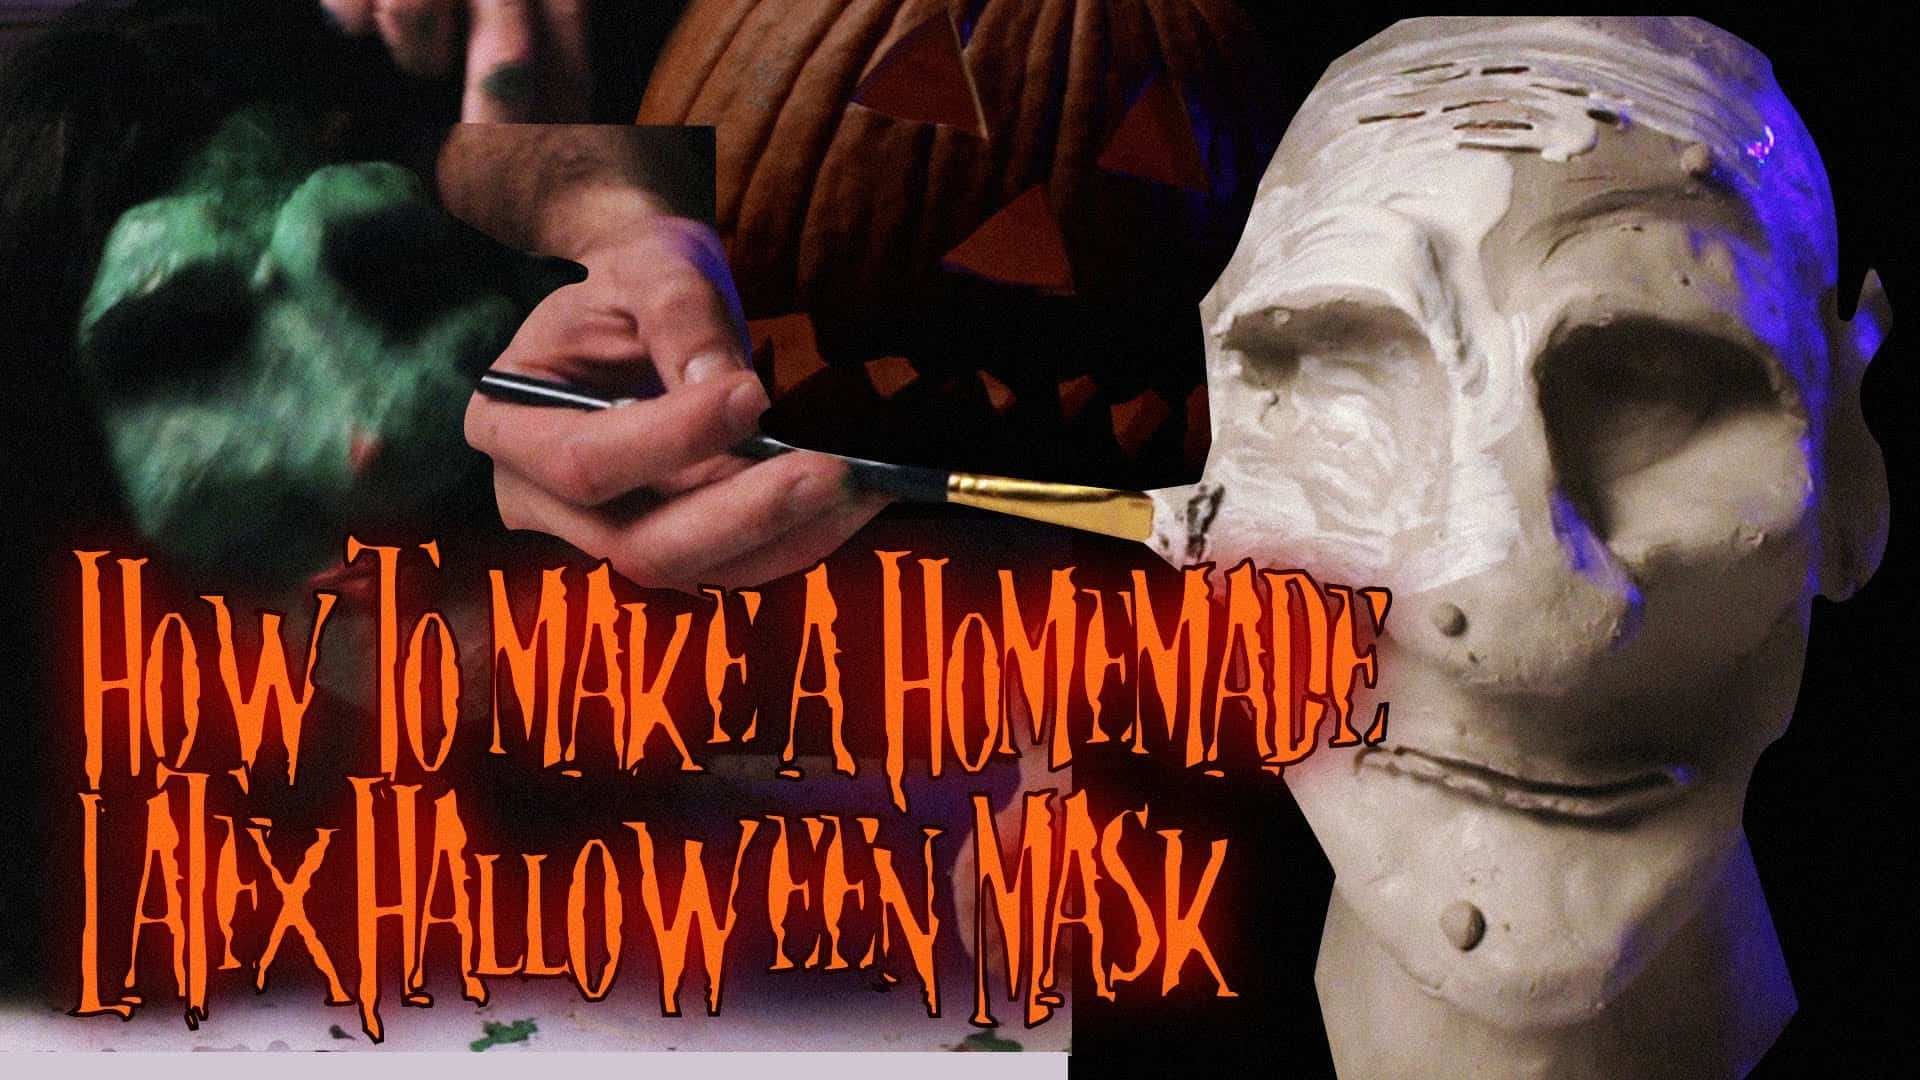 Homemade latex halloween mask